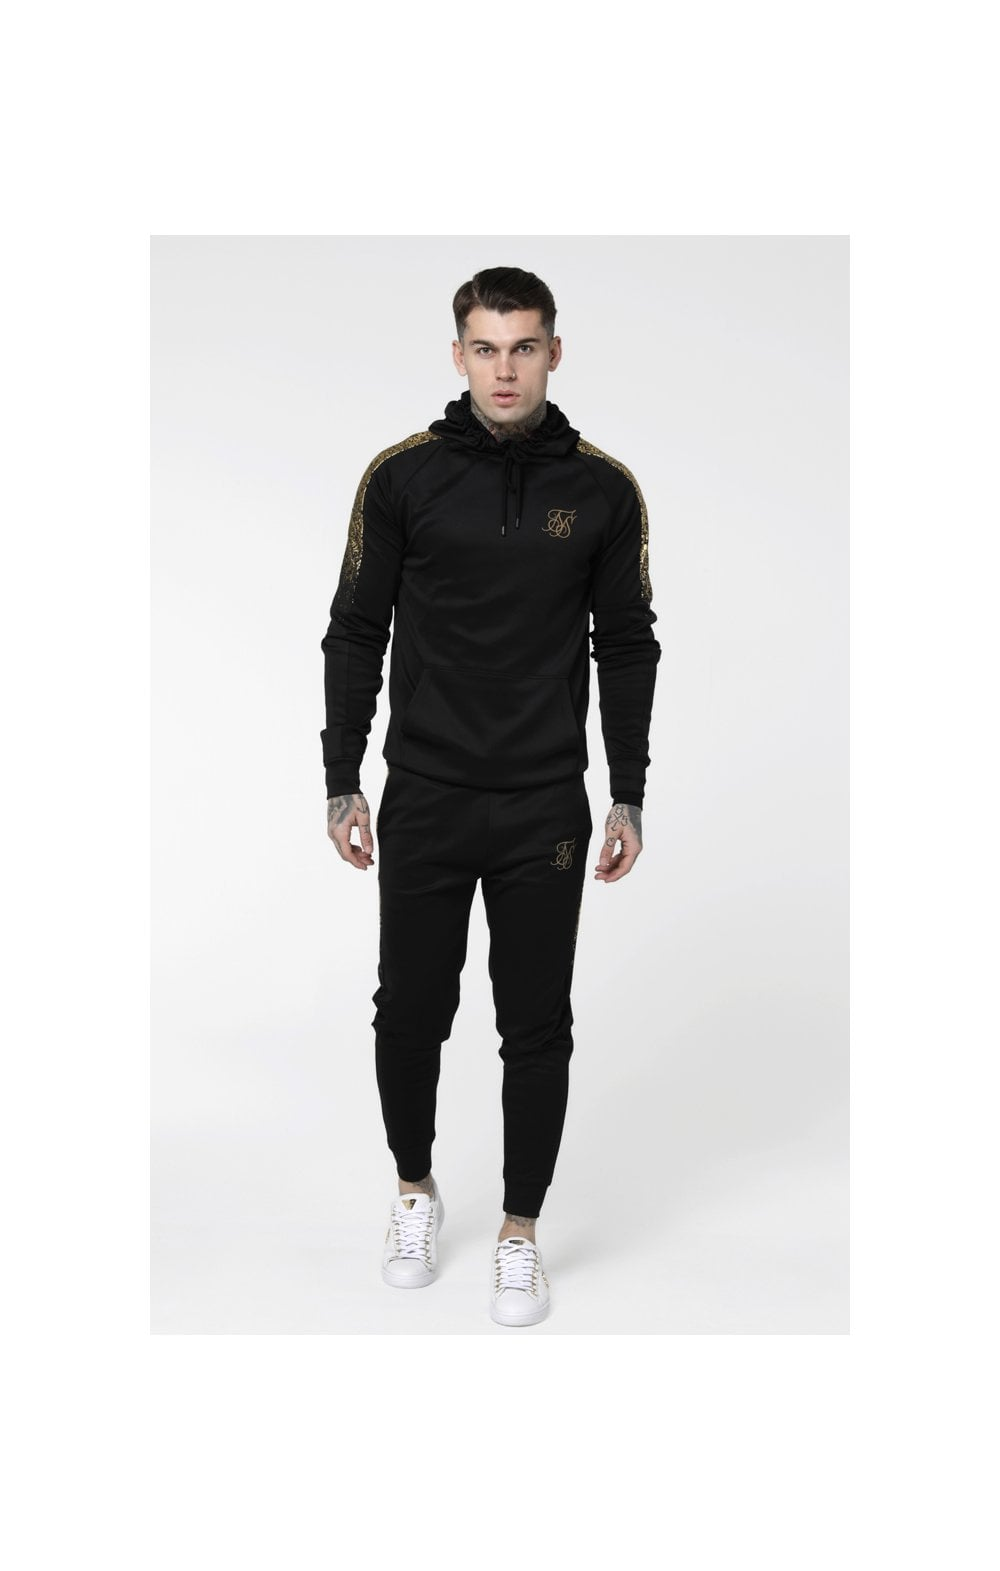 Load image into Gallery viewer, SikSilk Foil Fade Overhead Hoodie - Black & Gold (4)